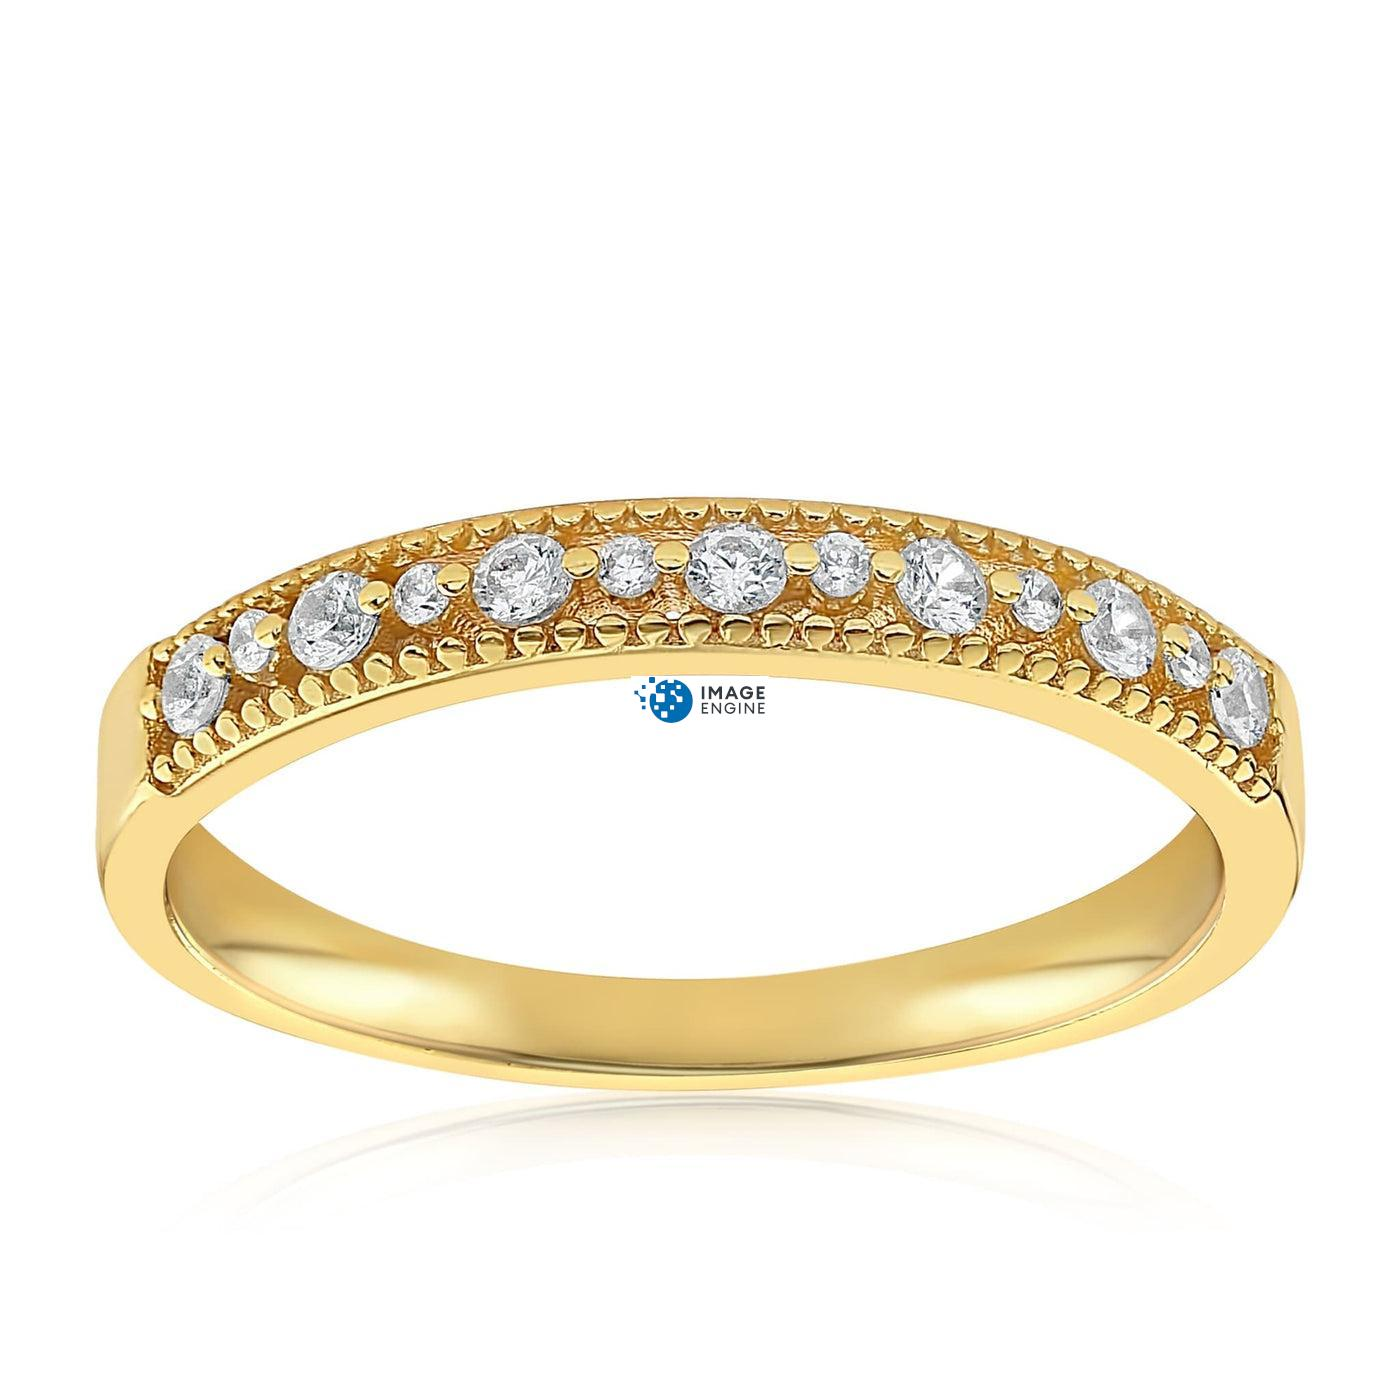 Joyce Layered Stack Ring - Front View Facing Up - 18K Yellow Gold Vermeil Featured